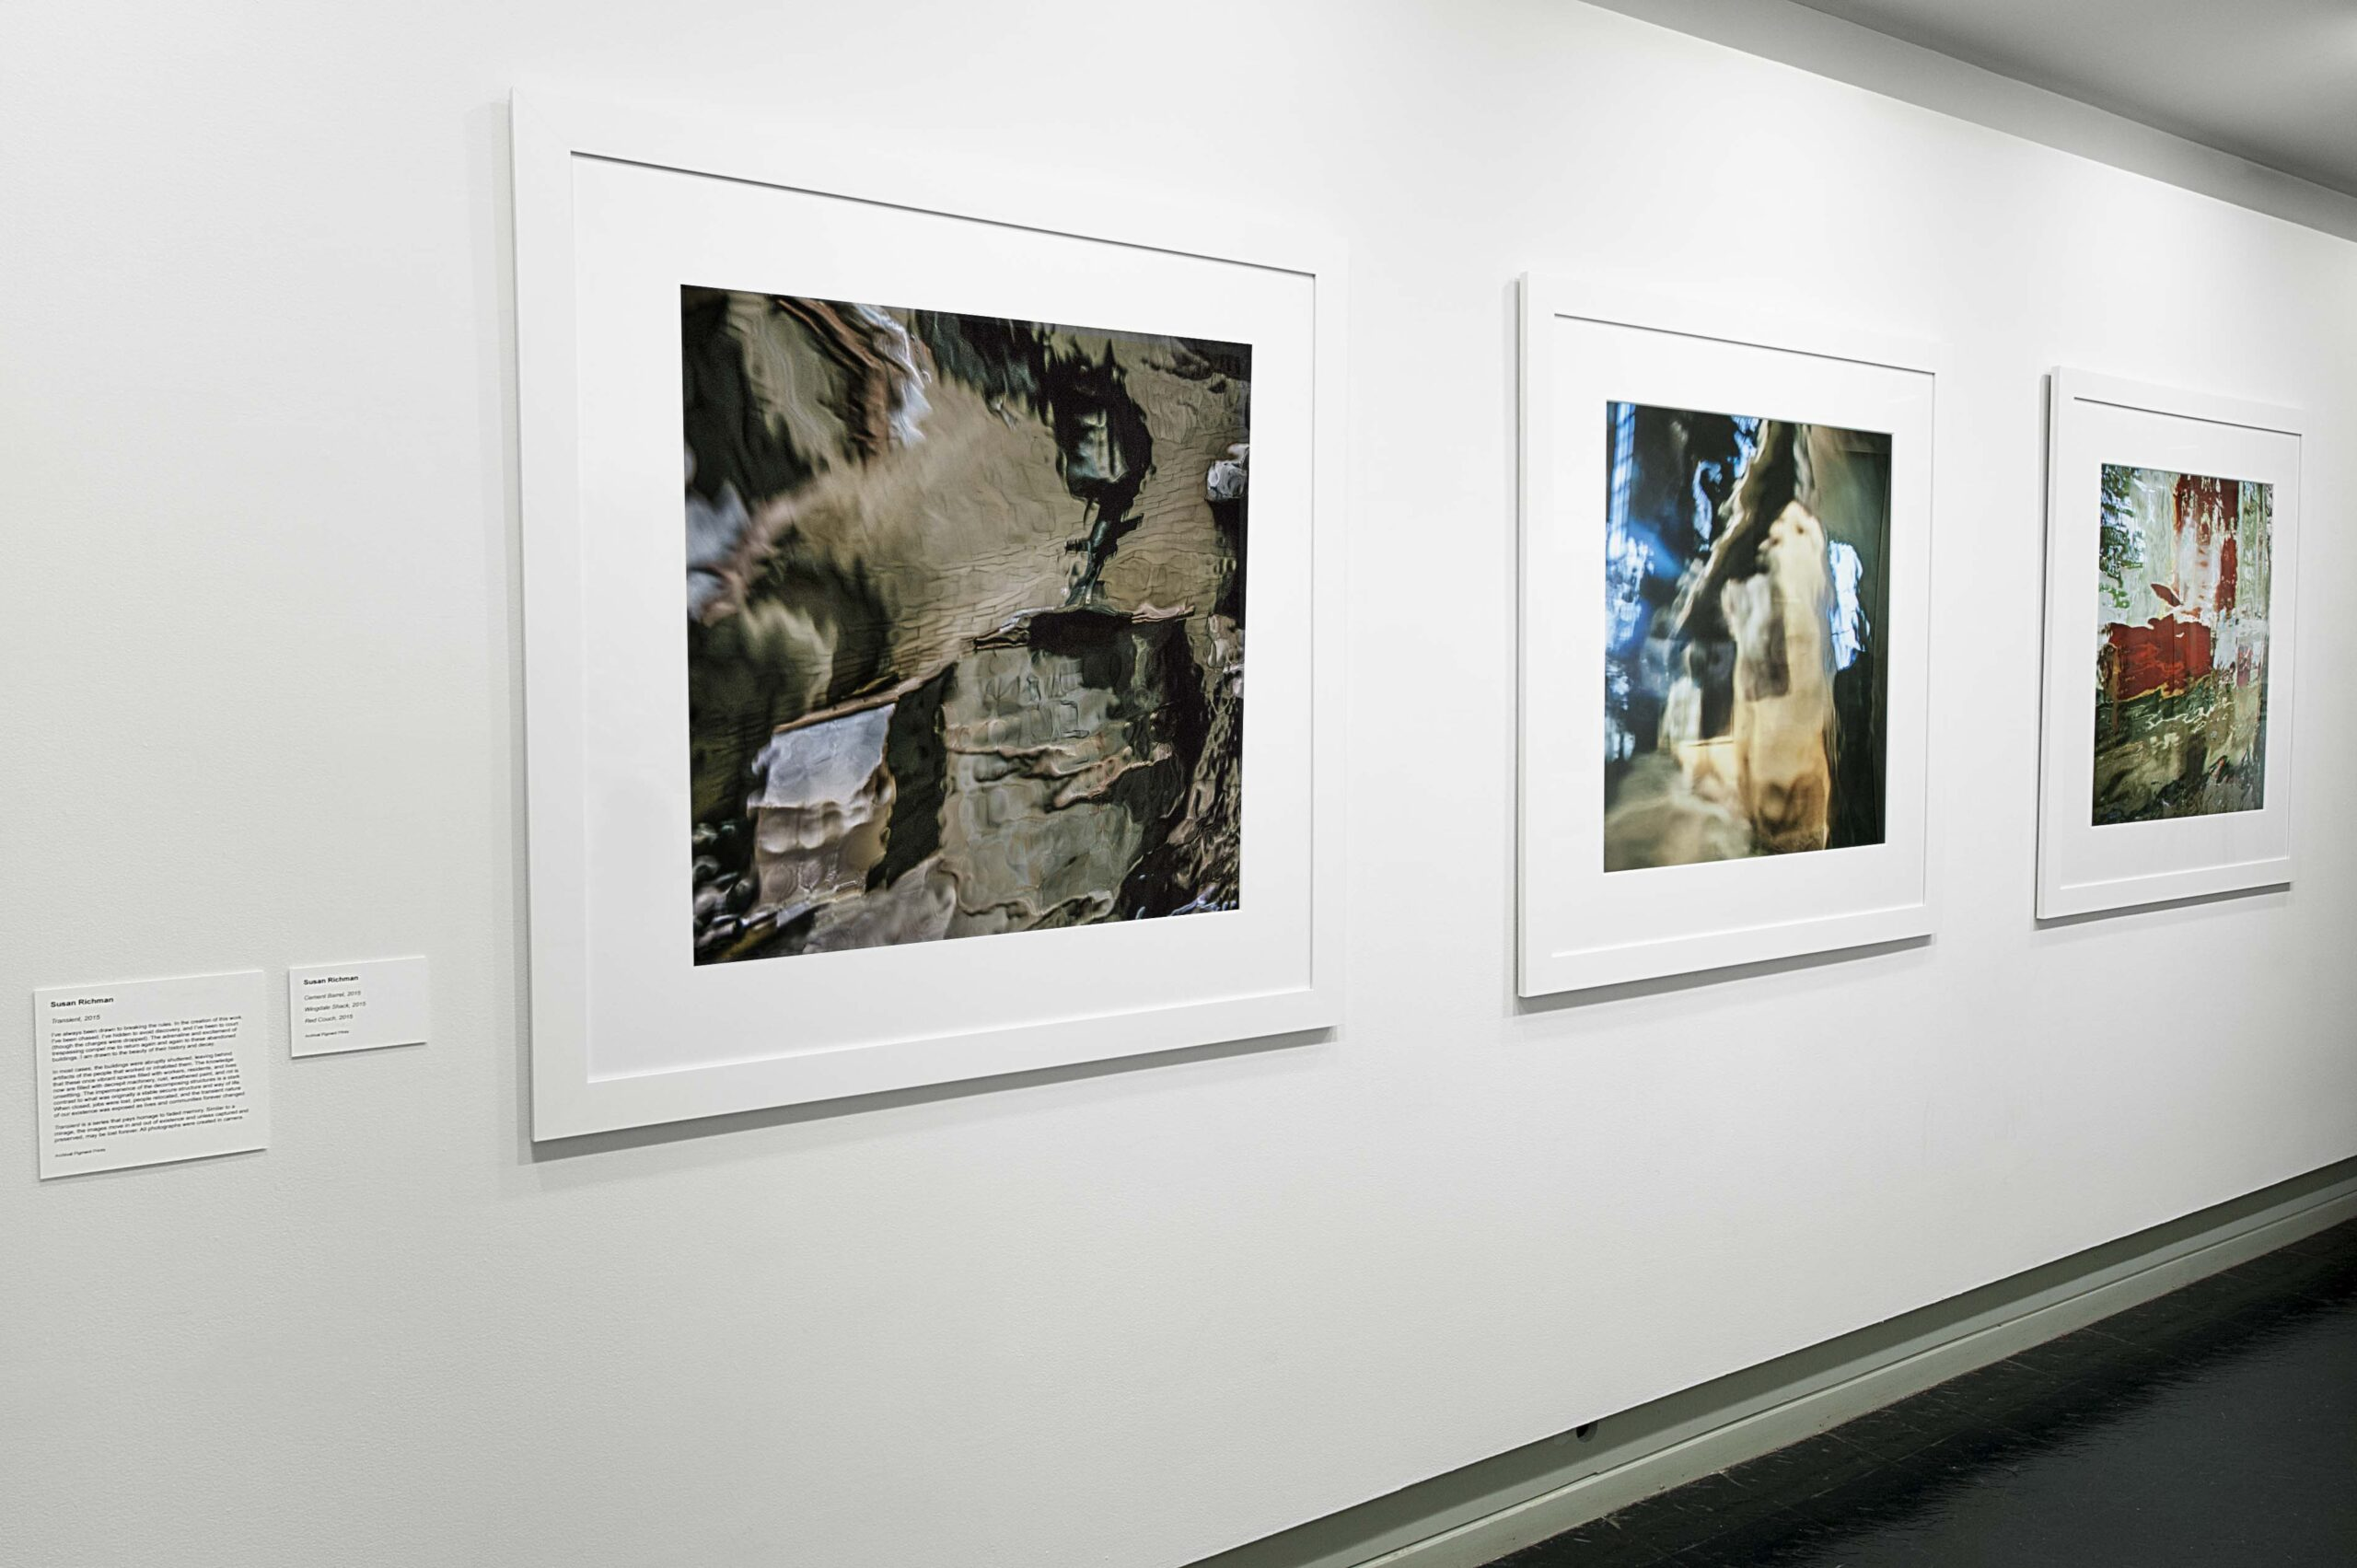 Transient, International Center For Photography Exhibition